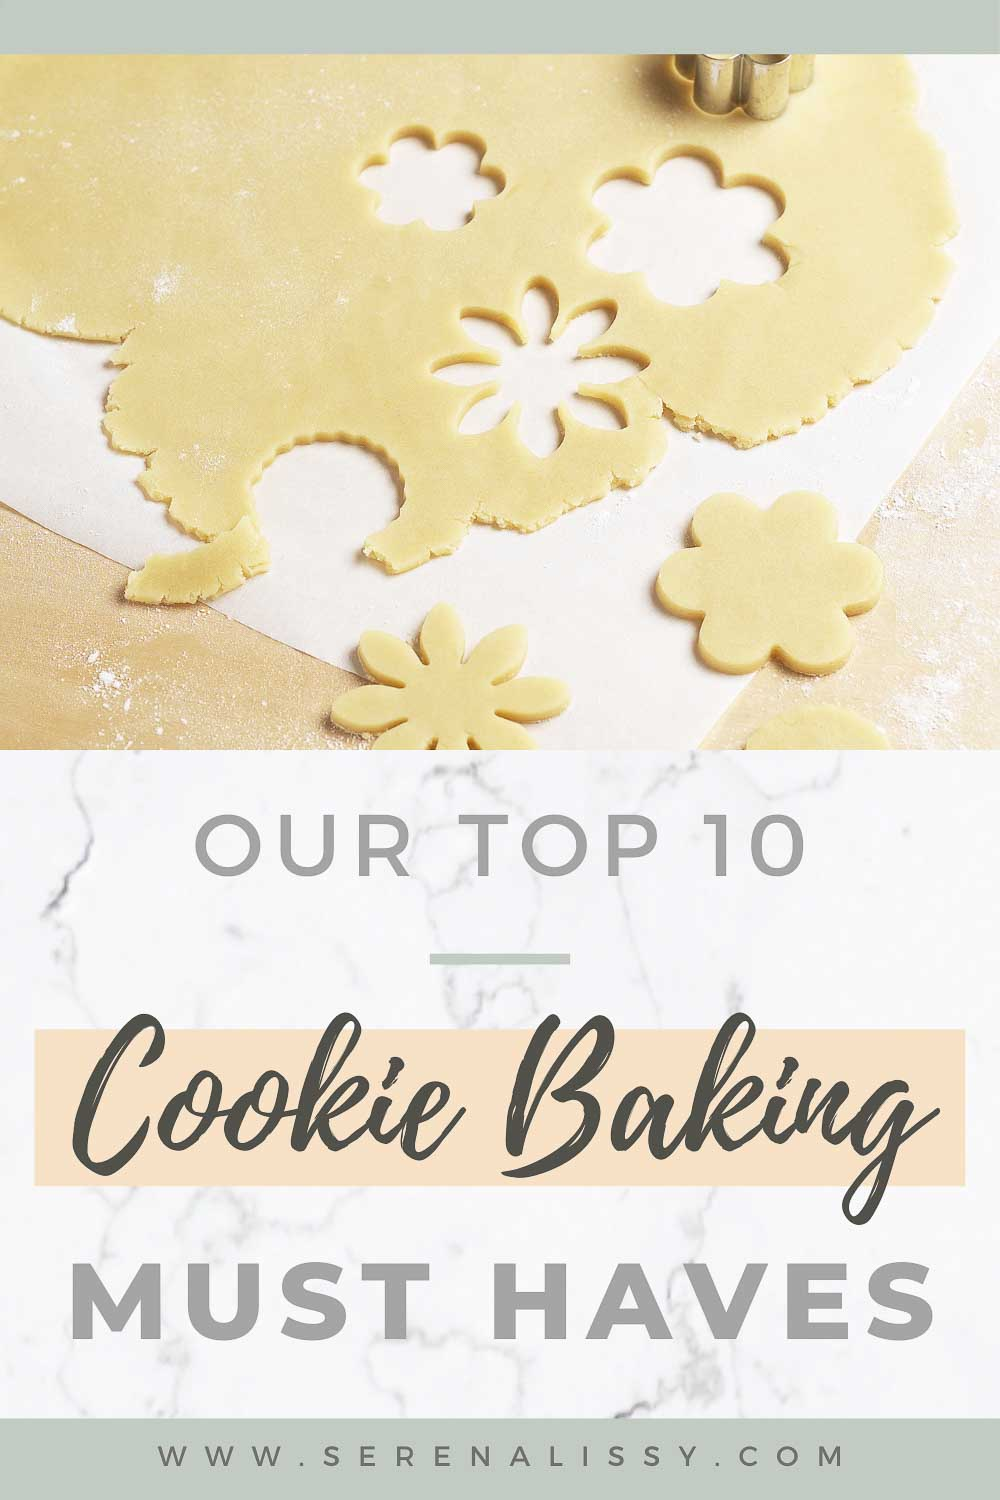 Top 10 Cookie Baking Must Haves